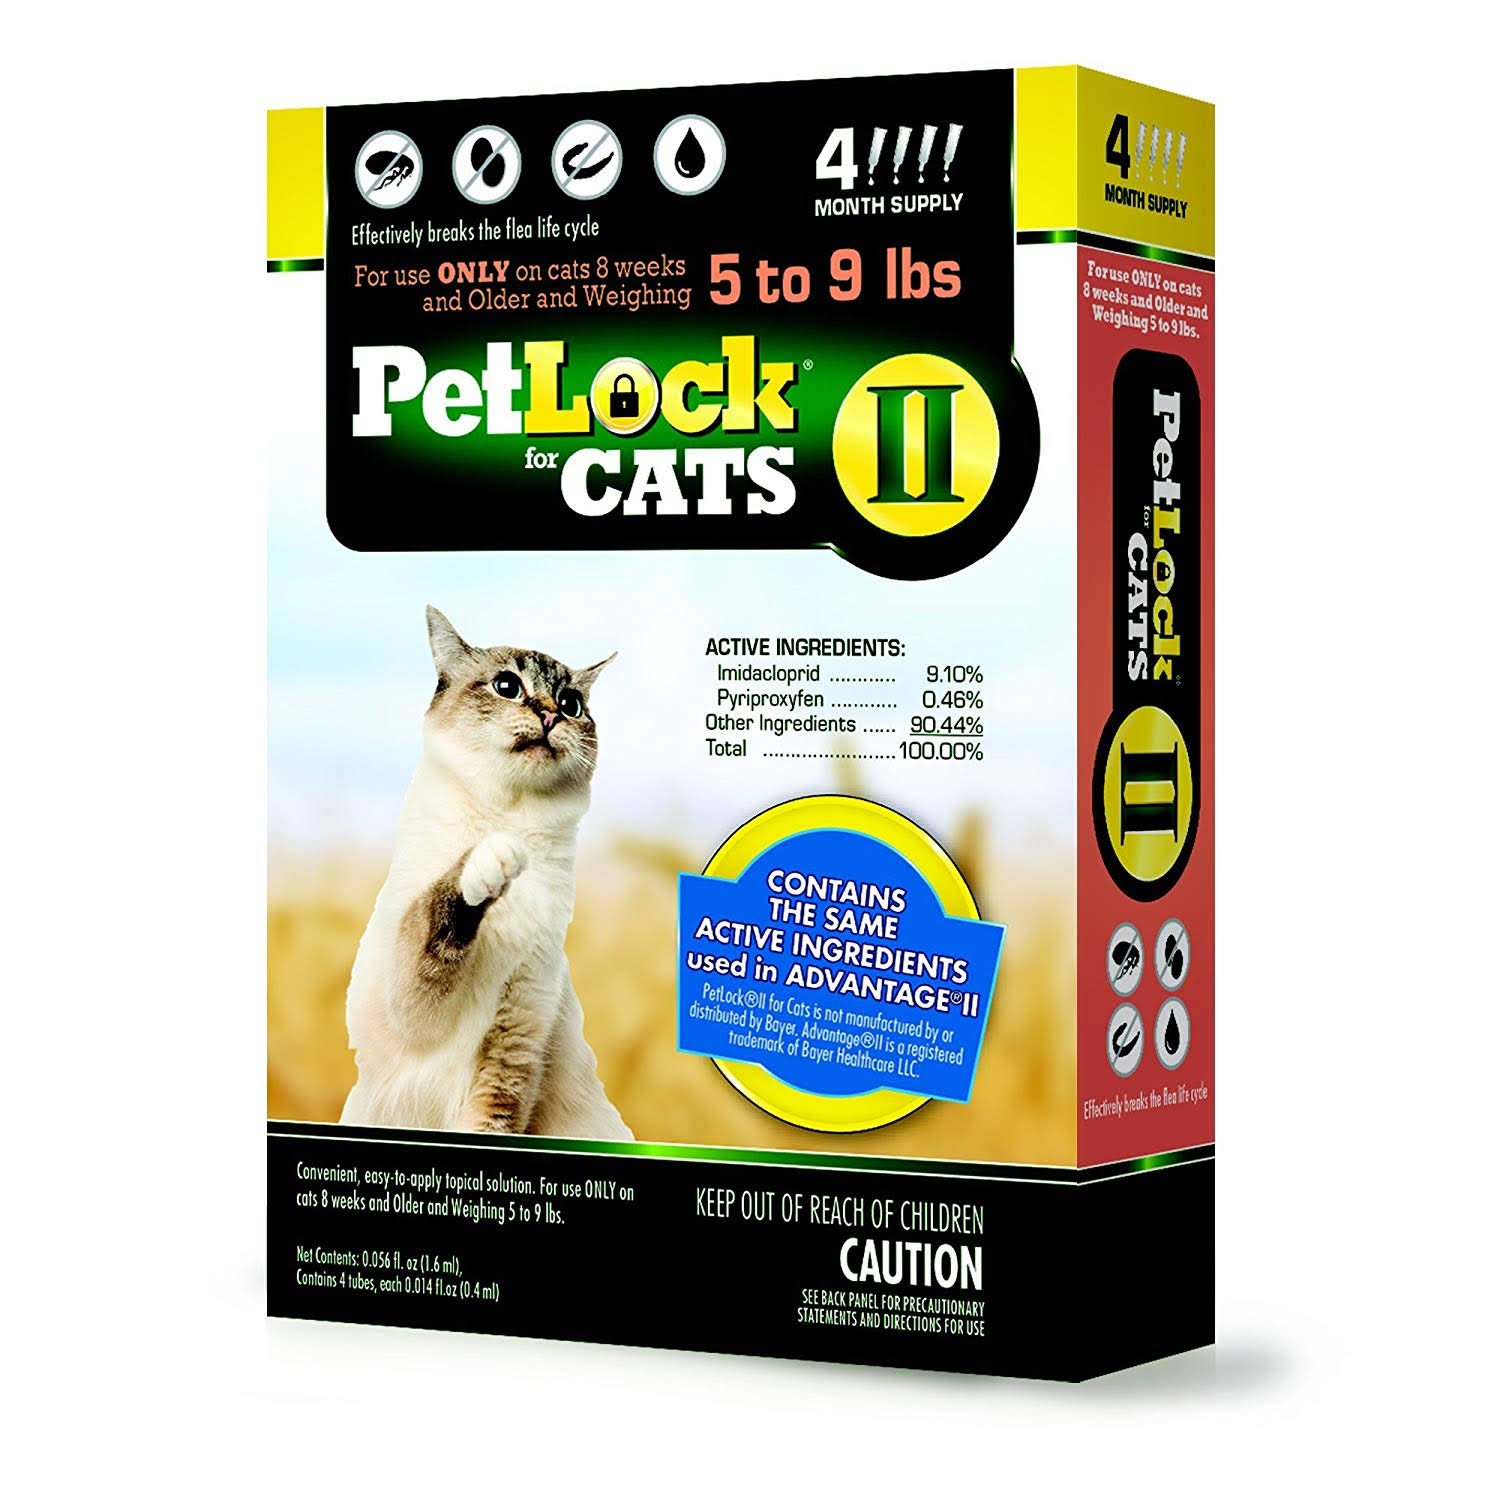 Petlock For Cats Ii Flea Treatment - 4 Month Supply